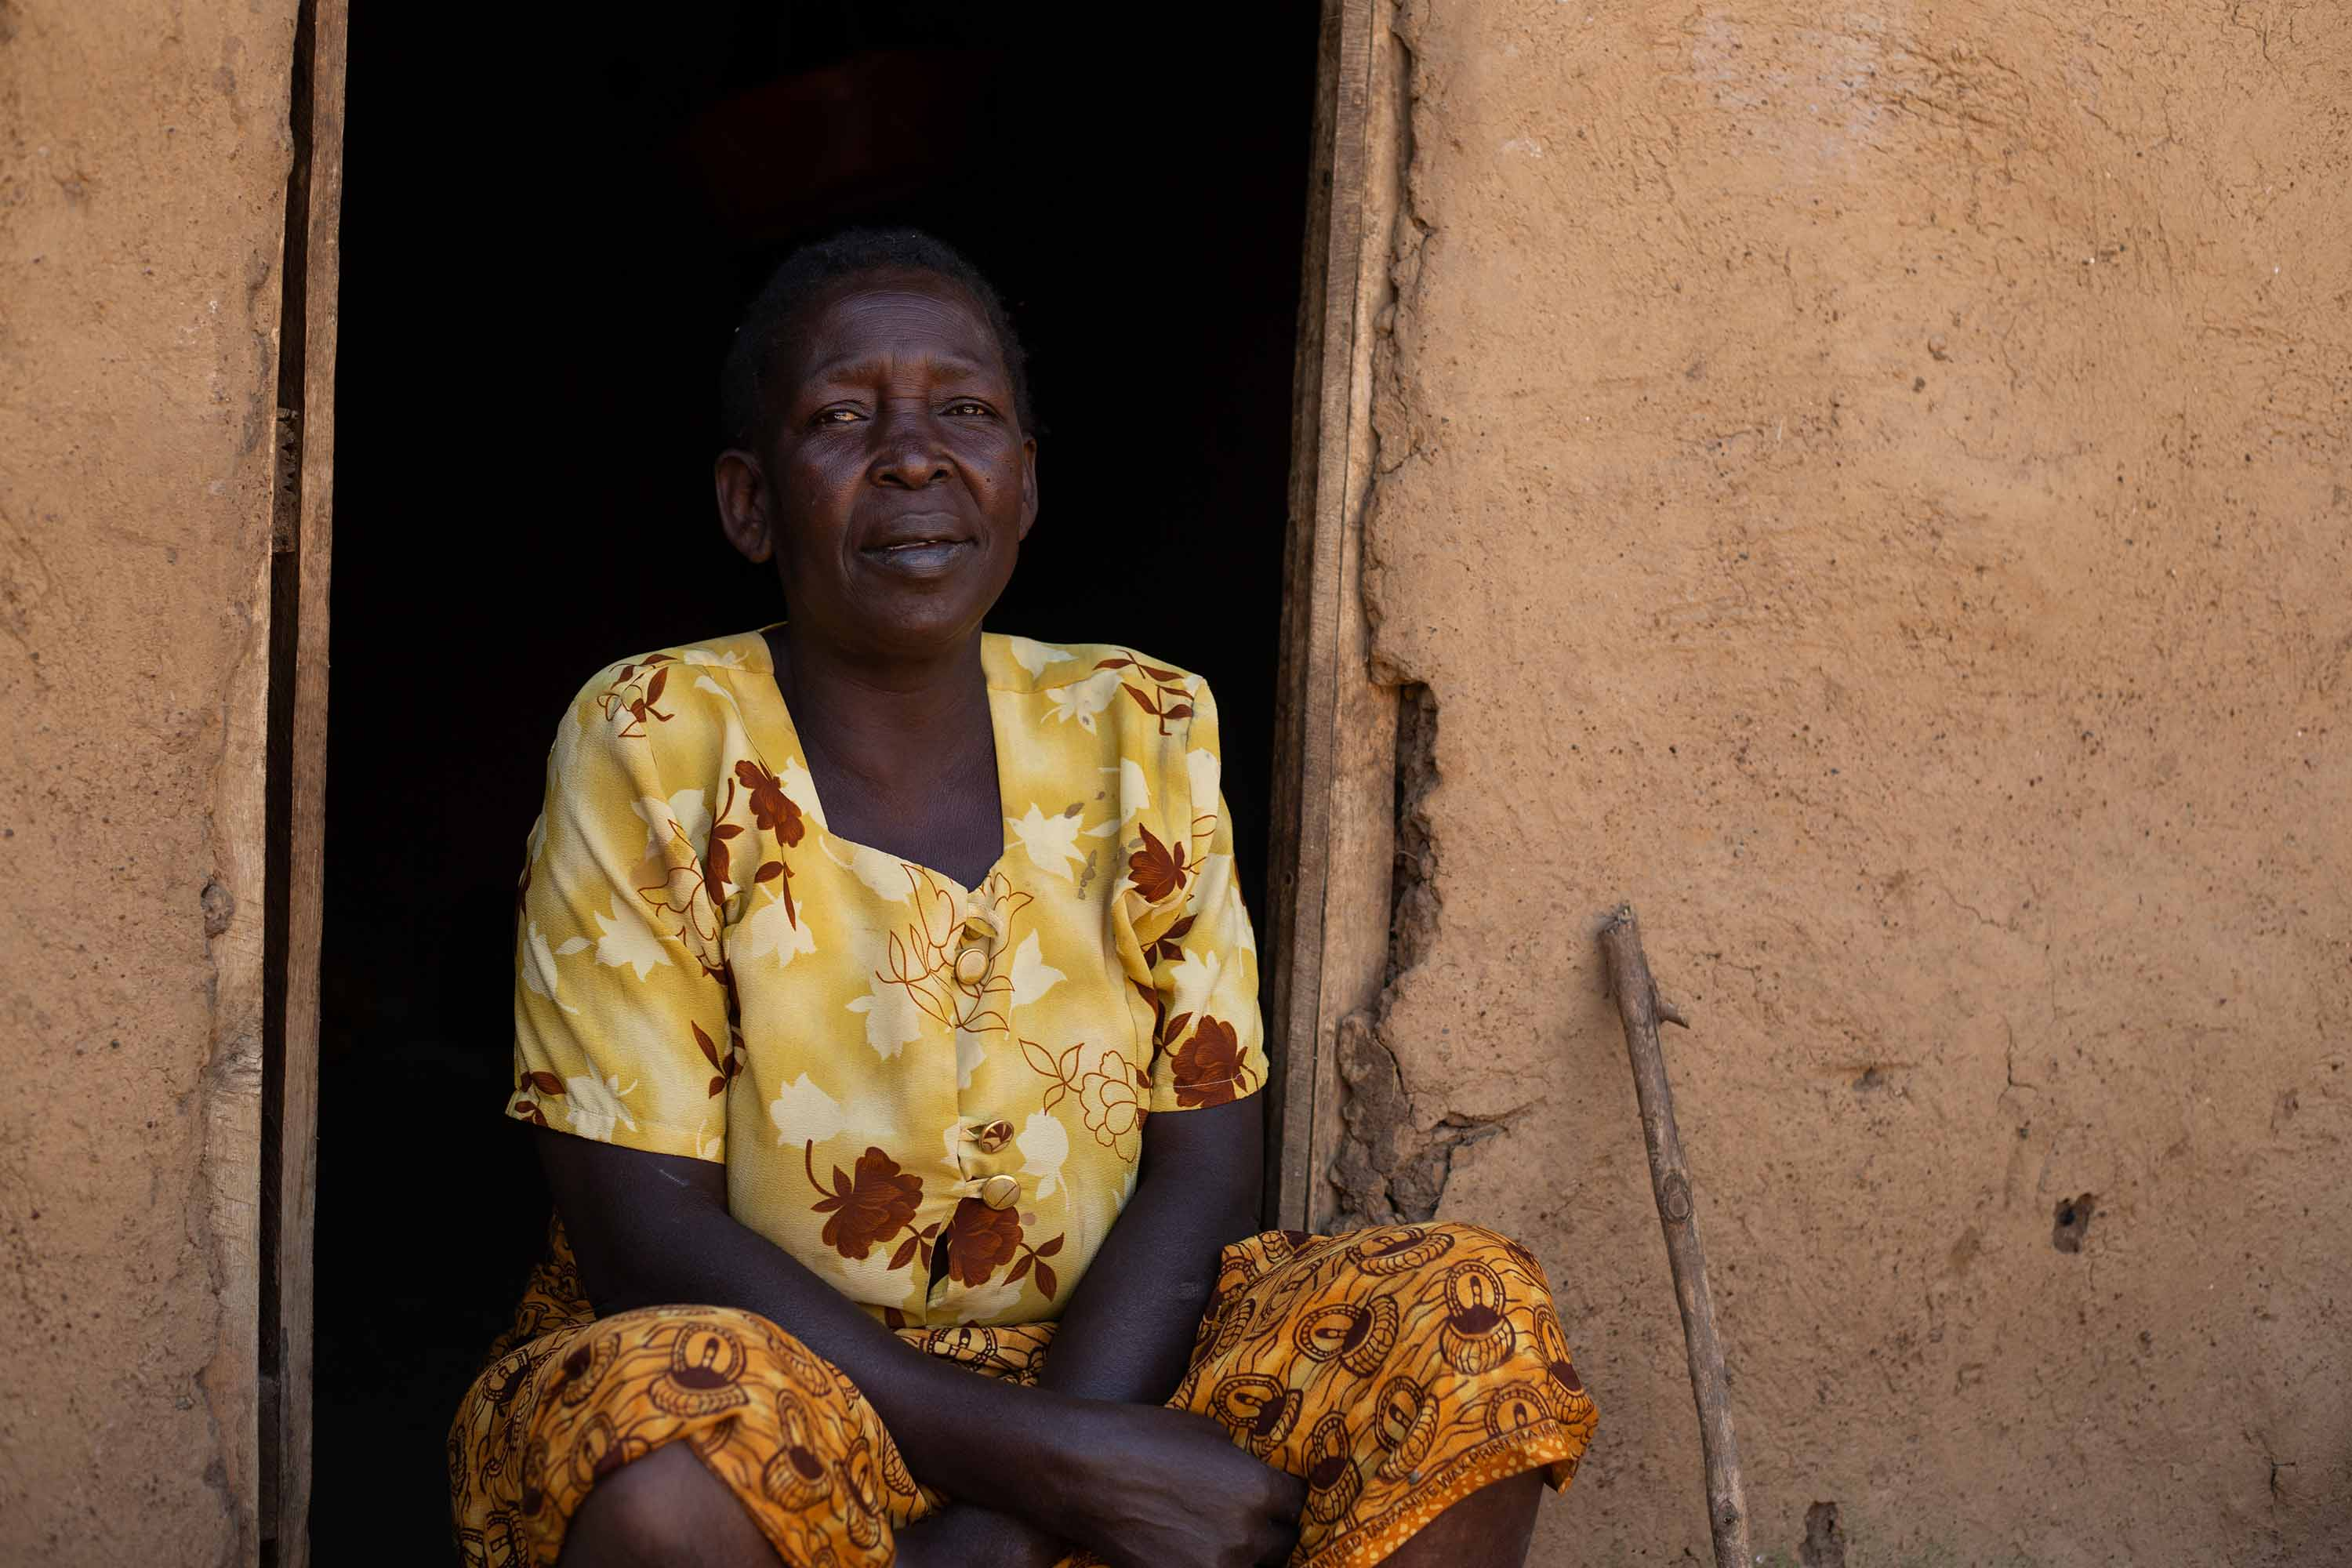 Christina Wambura, 64, sitting in the doorway of her home.